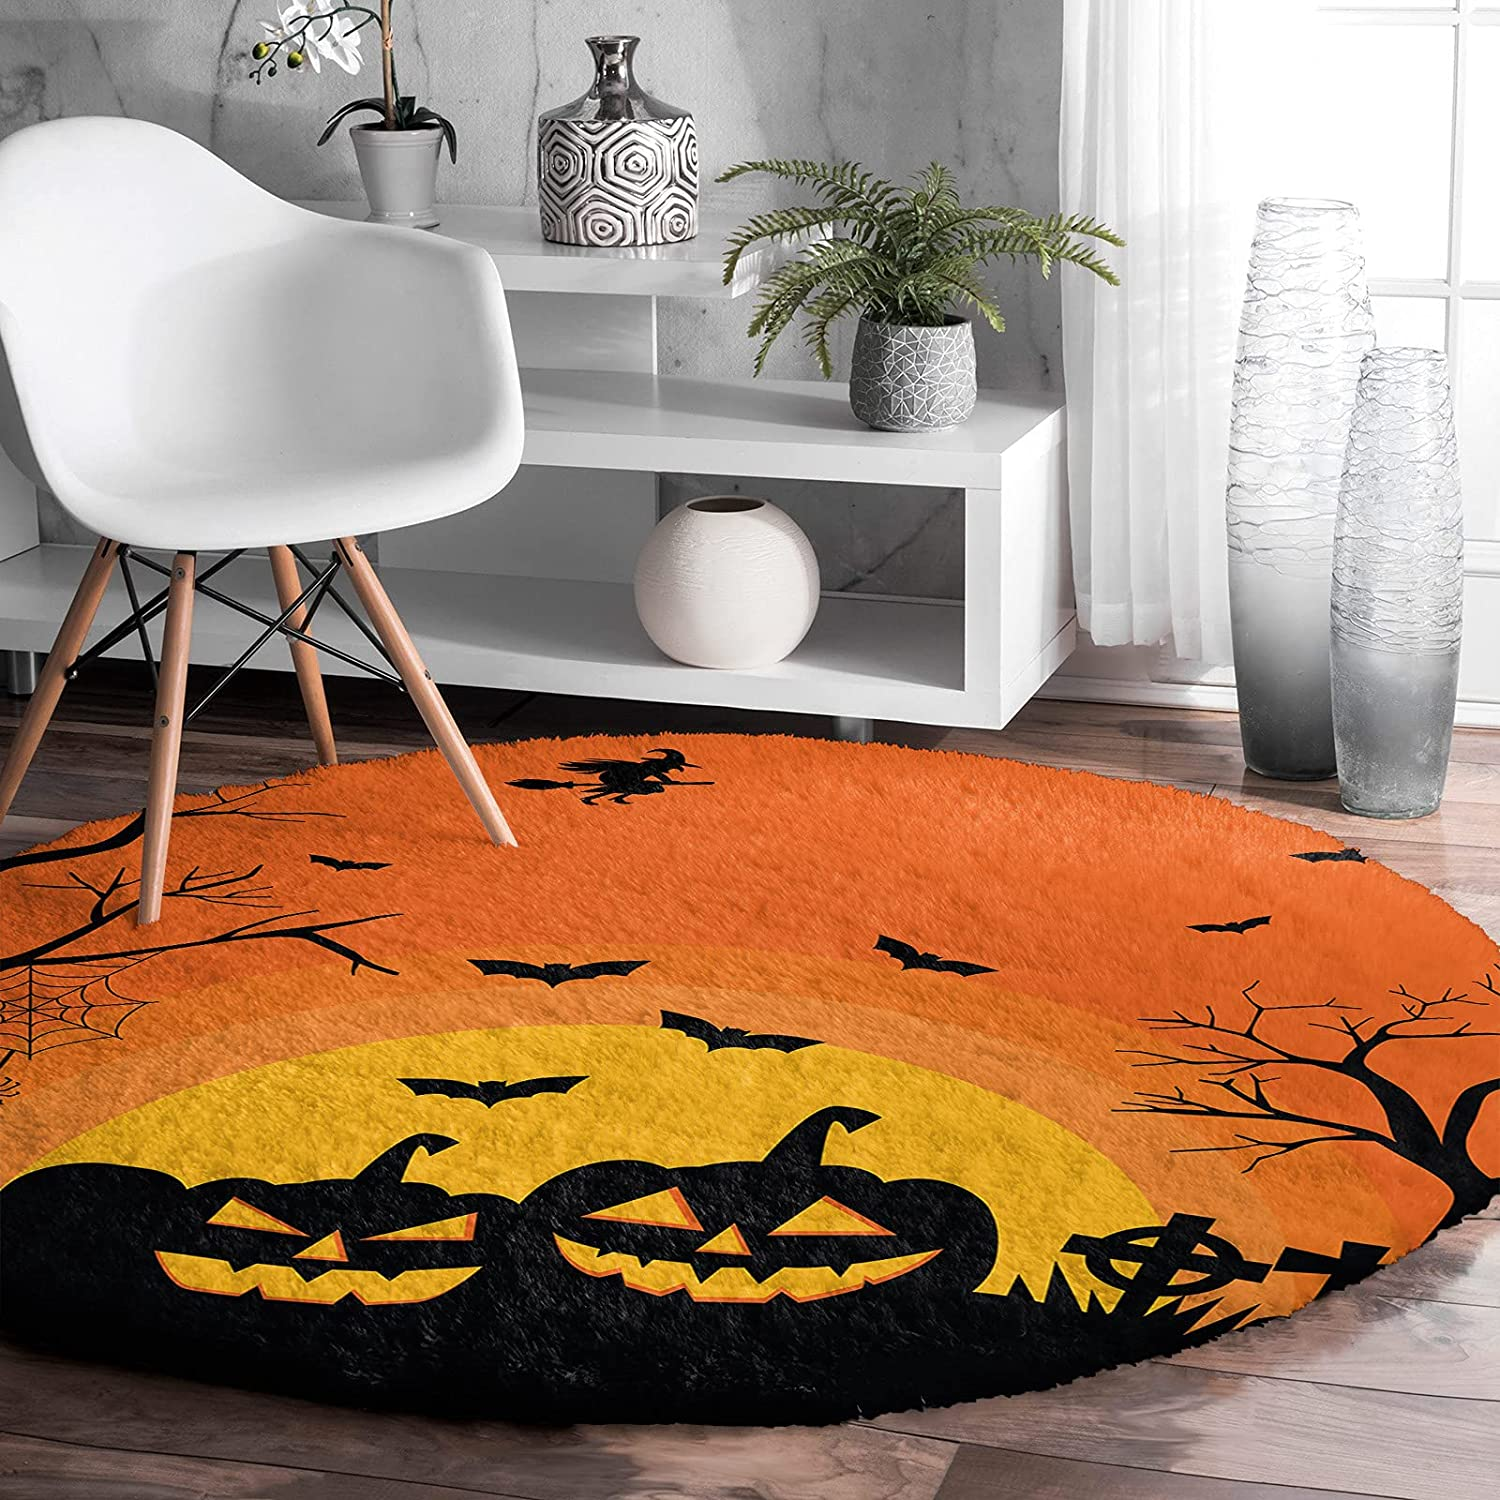 EwdeWwo Shag Ranking TOP8 Area Rug 5ft Fixed price for sale Indoor Halloween Rugs- Sty Round